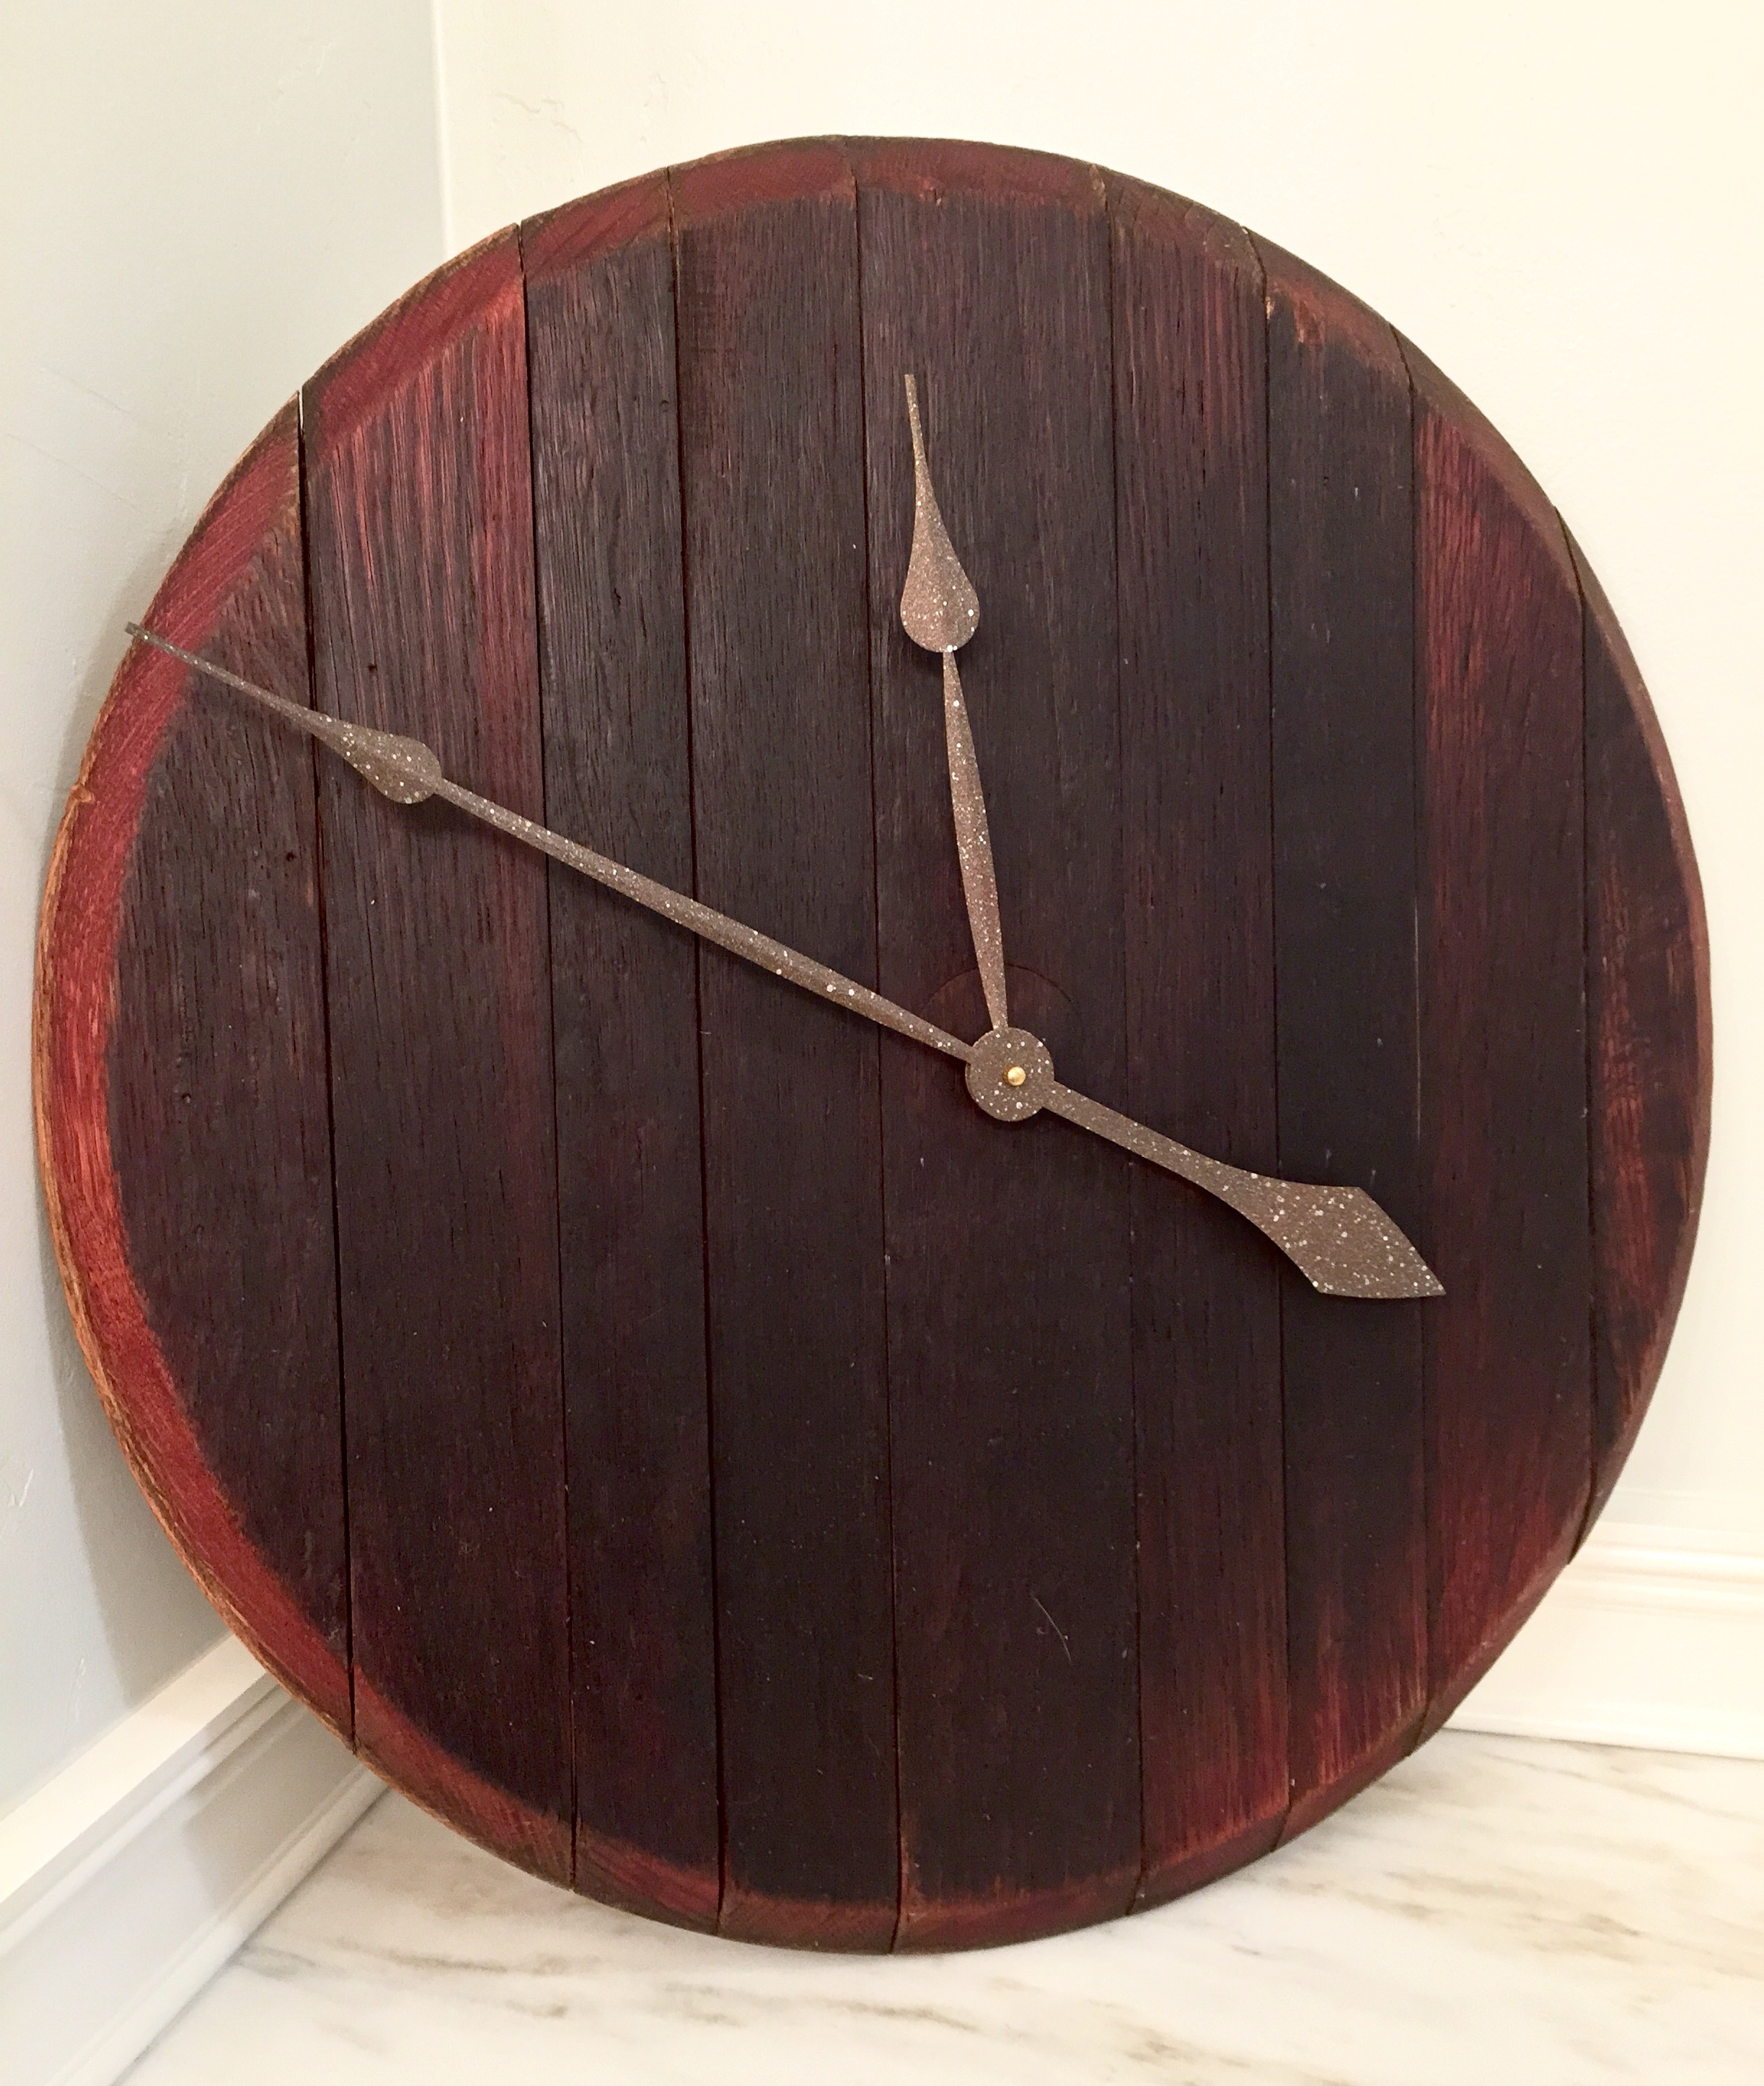 Barrel Head Clocks